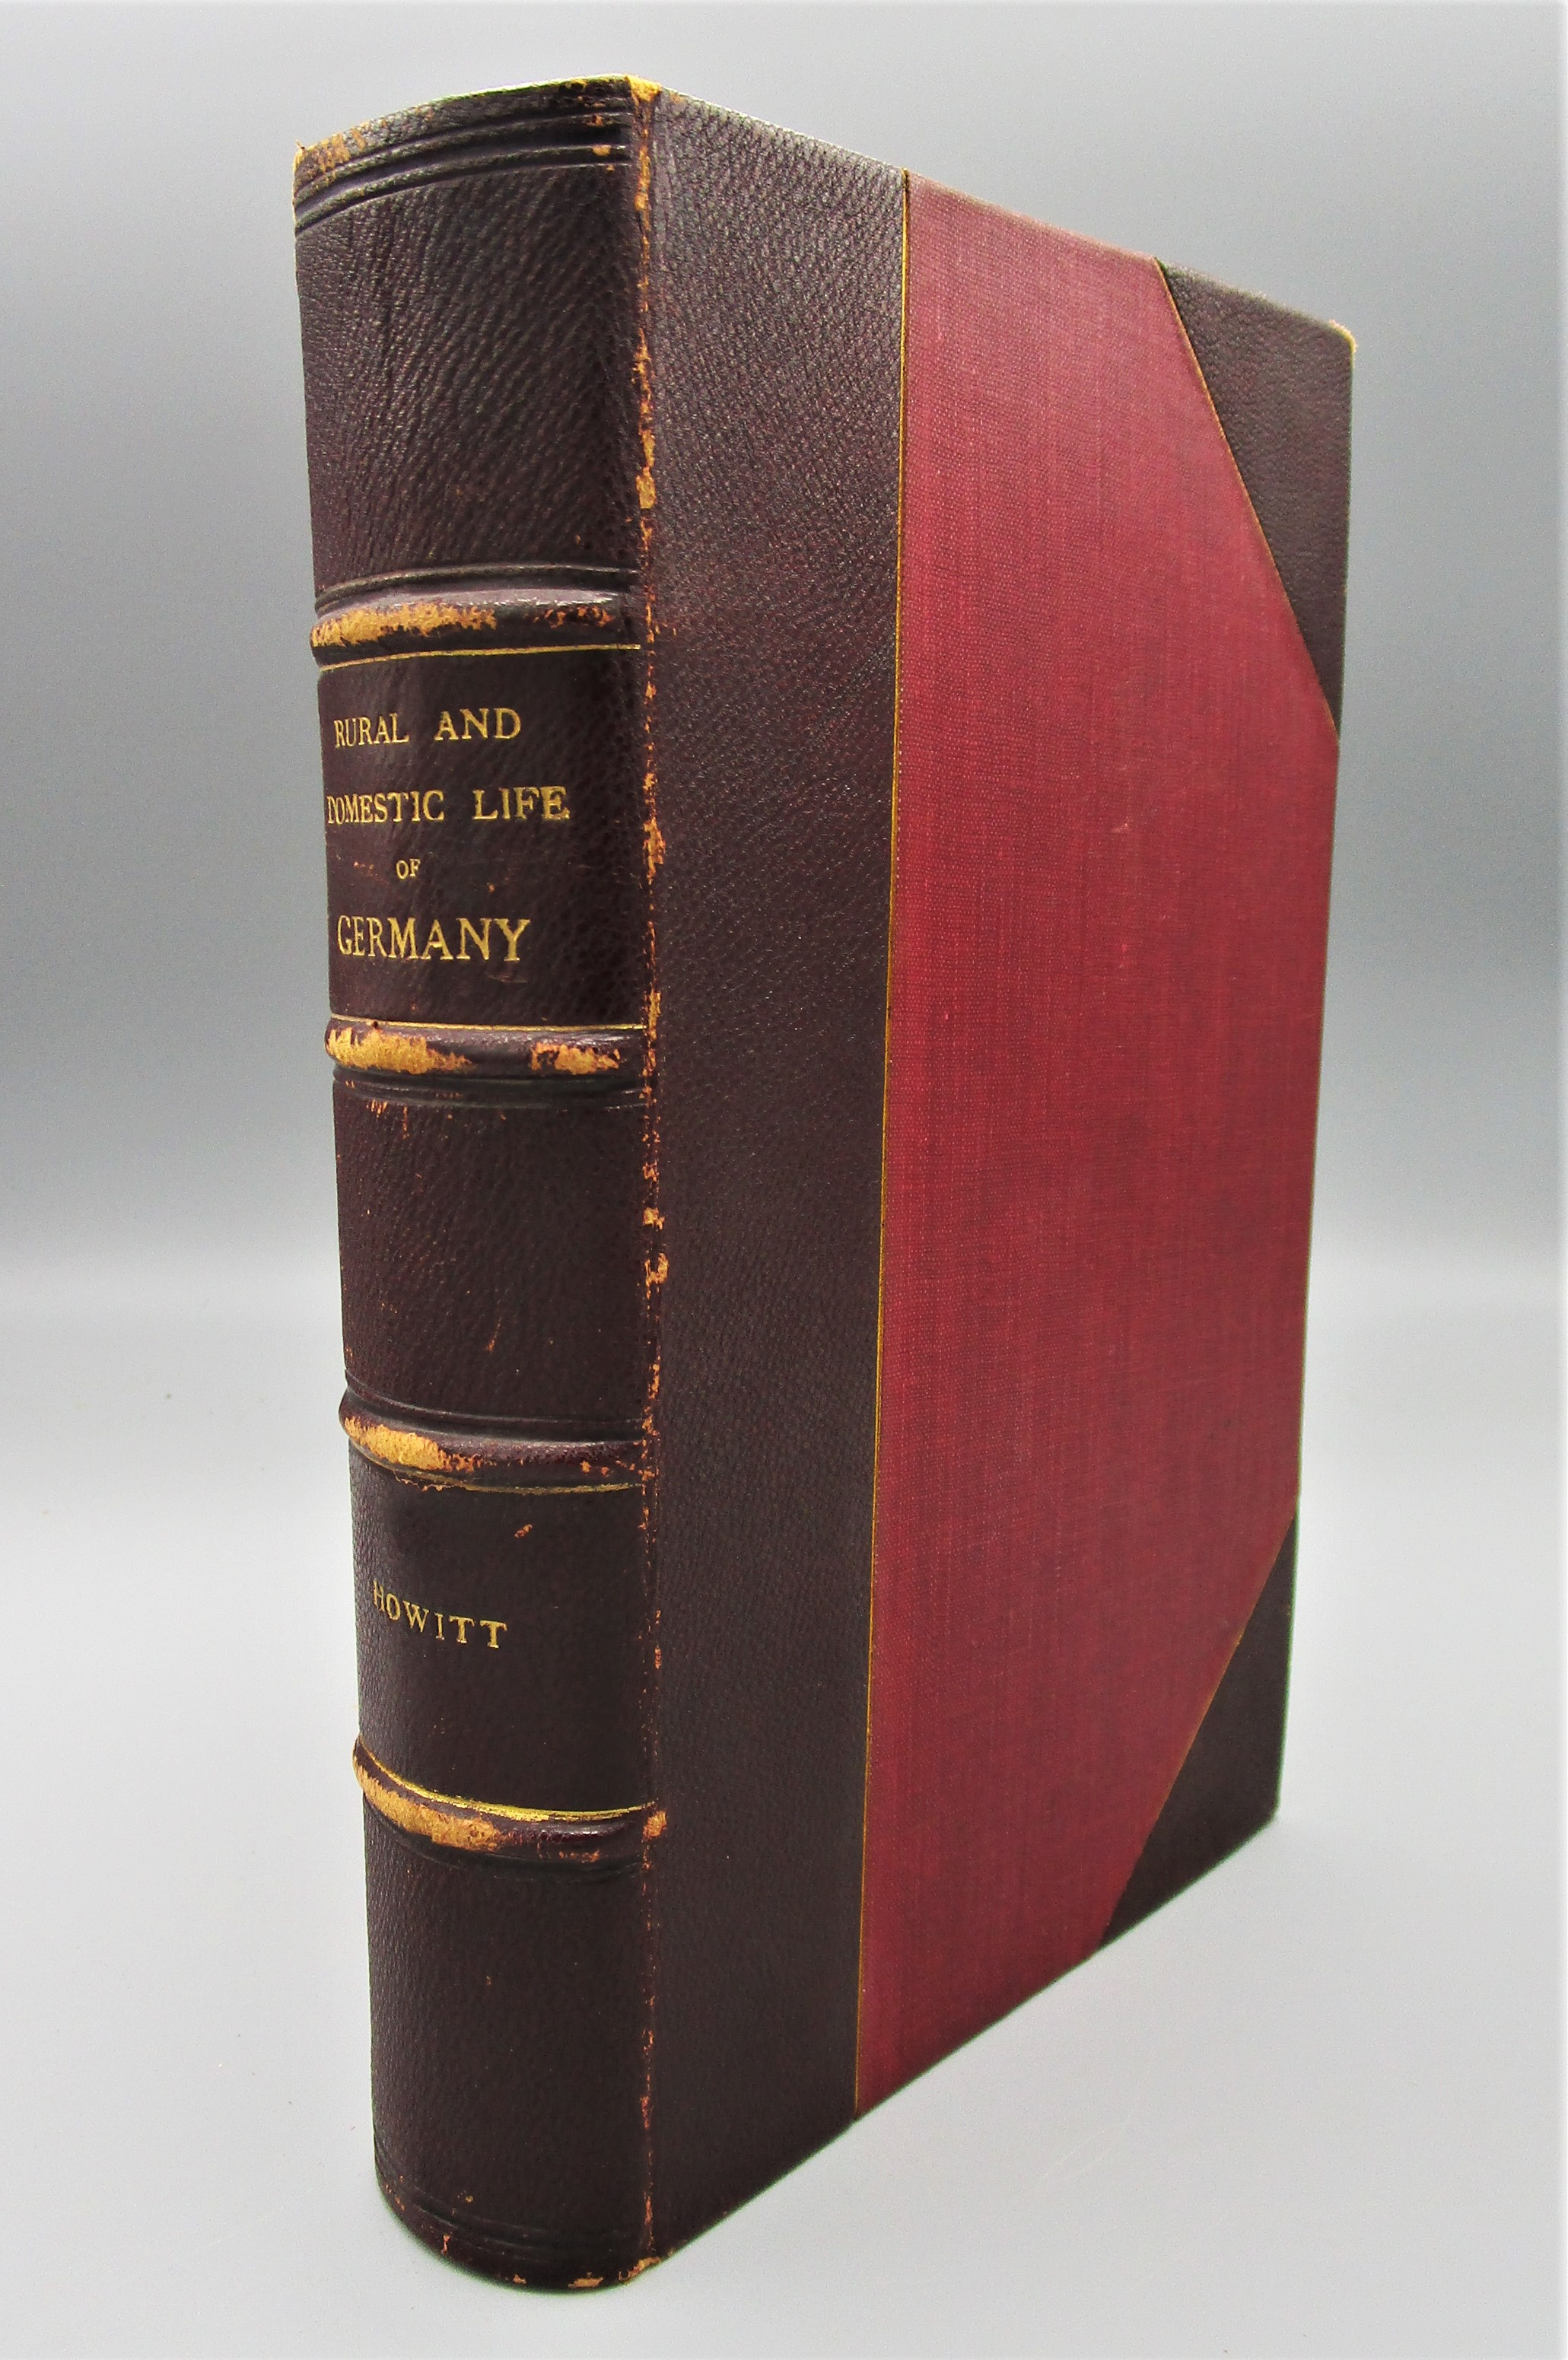 THE RURAL AND DOMESTIC LIFE OF GERMANY, by William Howitt - 1842